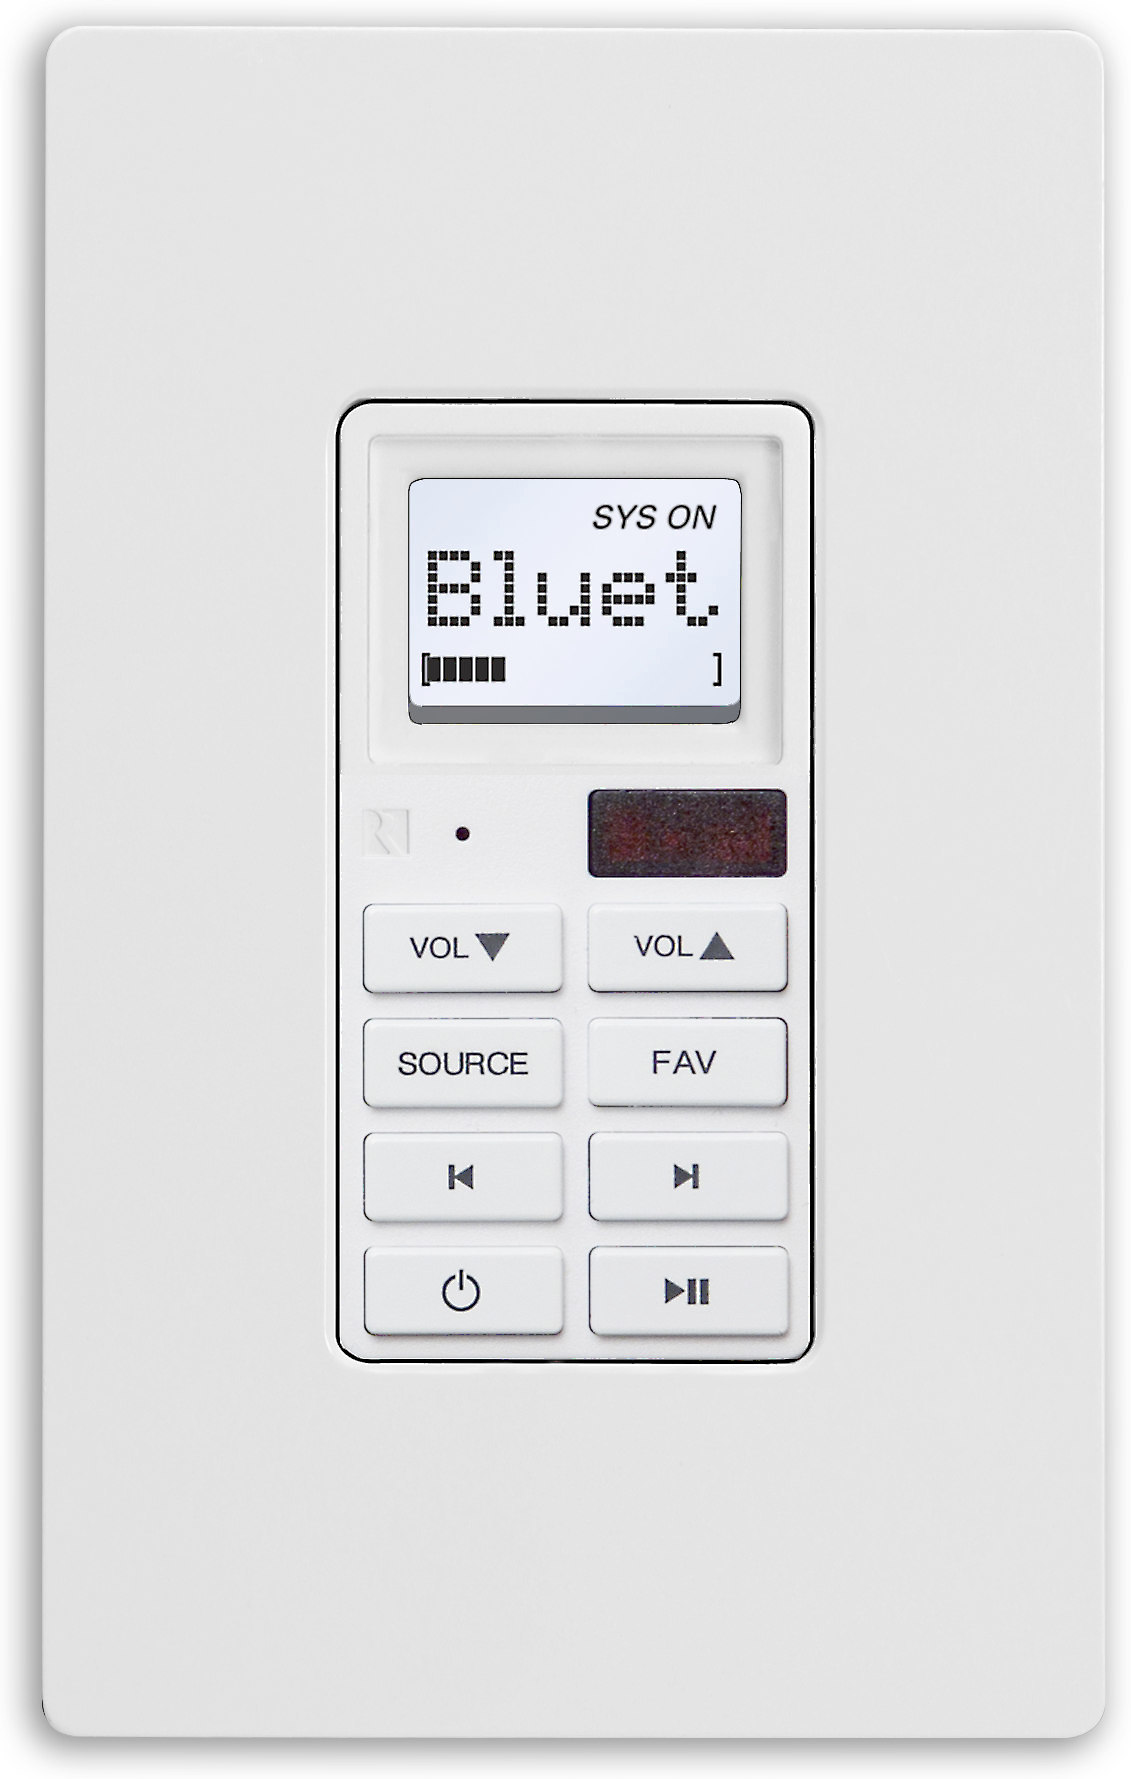 Russound Slk 1 In Wall Keypad For Russound Mca Series Controllers At Crutchfield